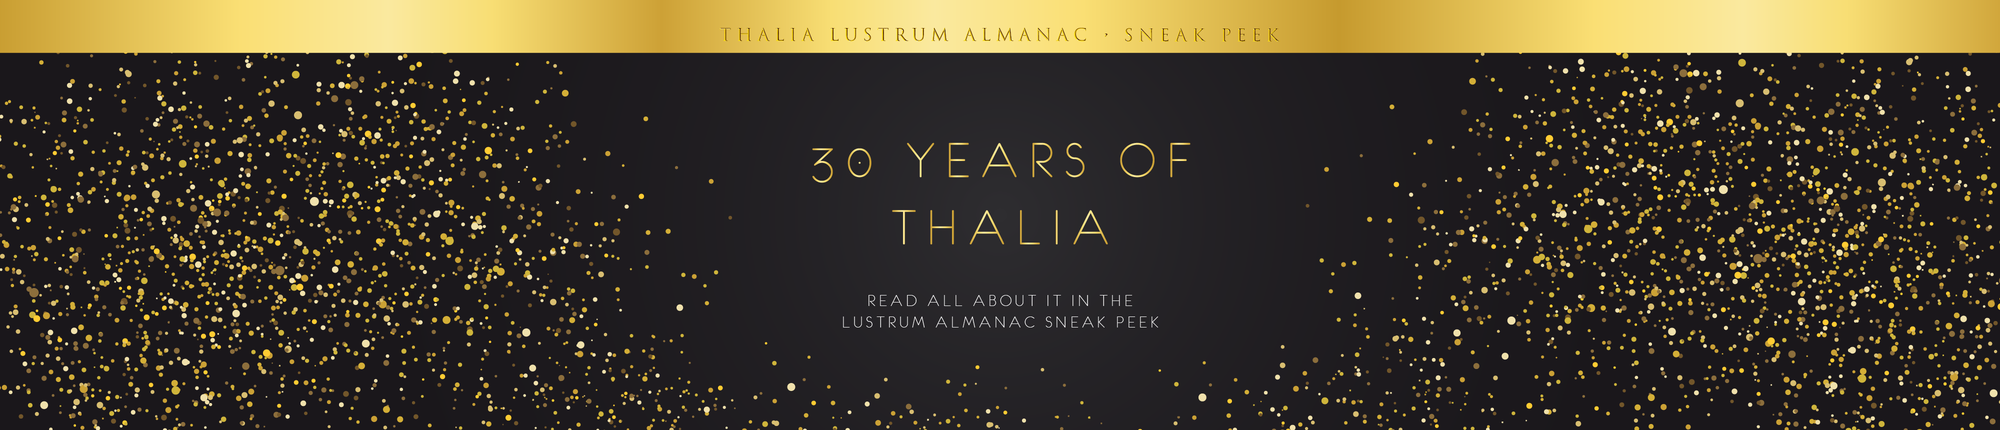 Lustrum almanac sneak peek